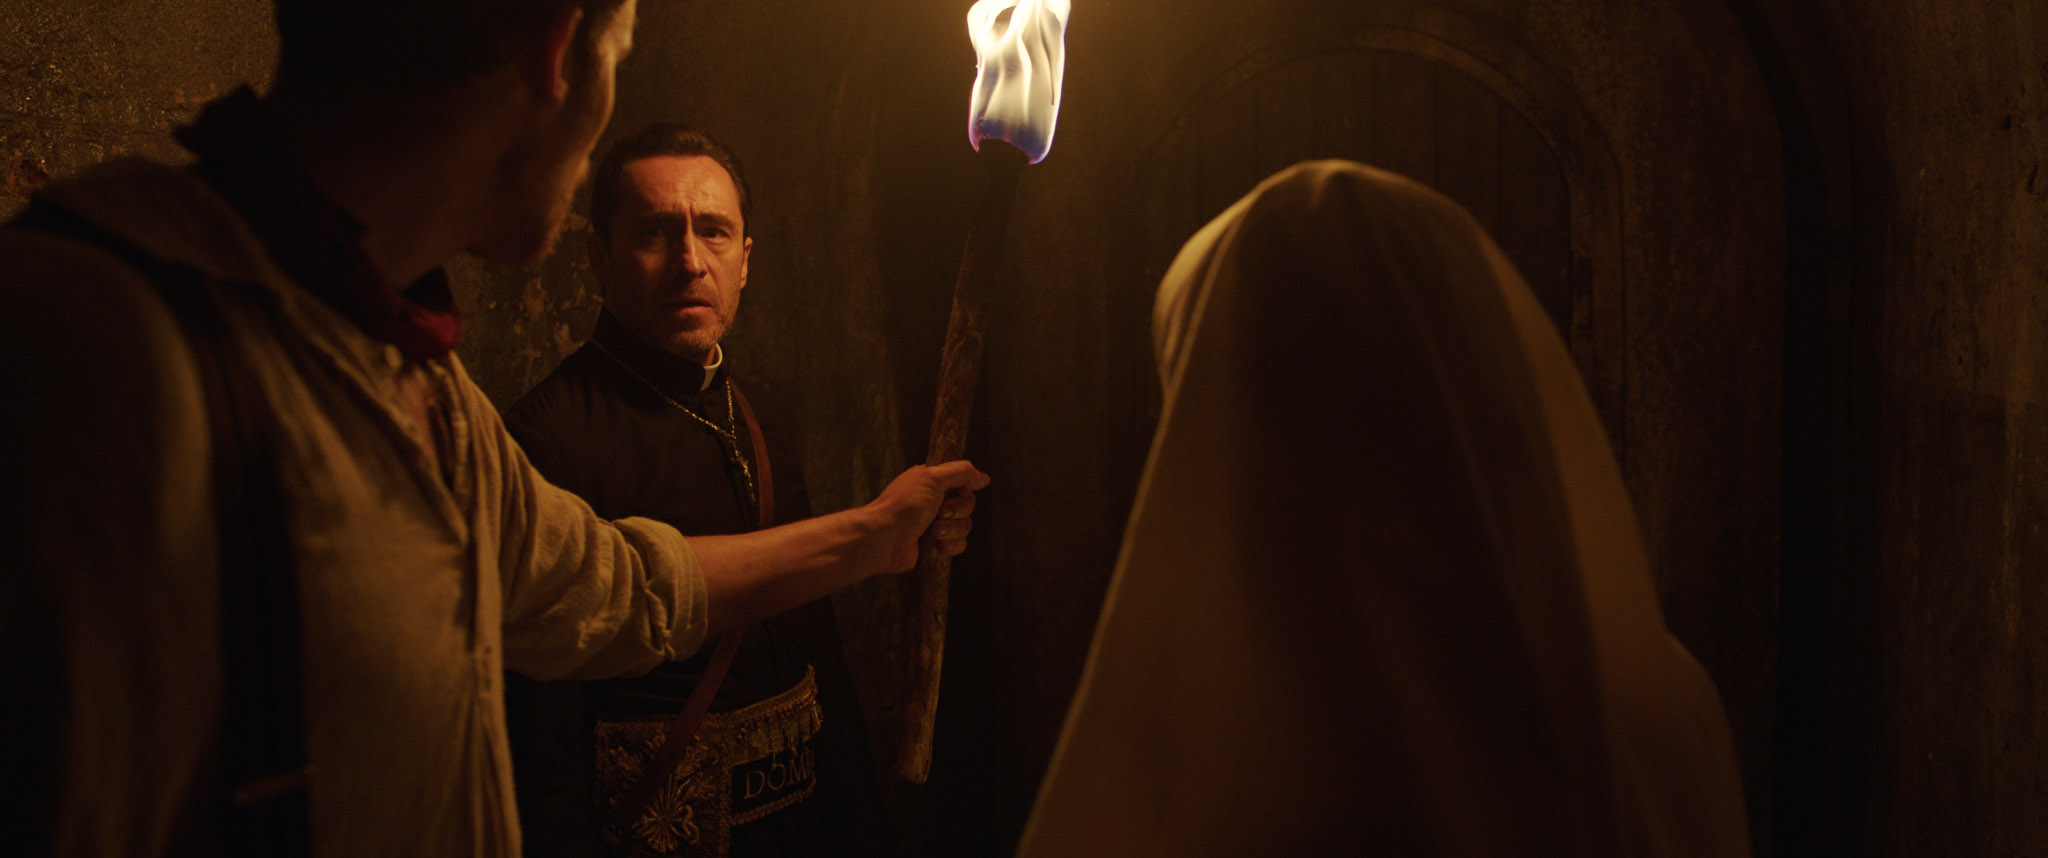 The Nun Trailer Goes Full On Buried In Claustrophobic New Teaser